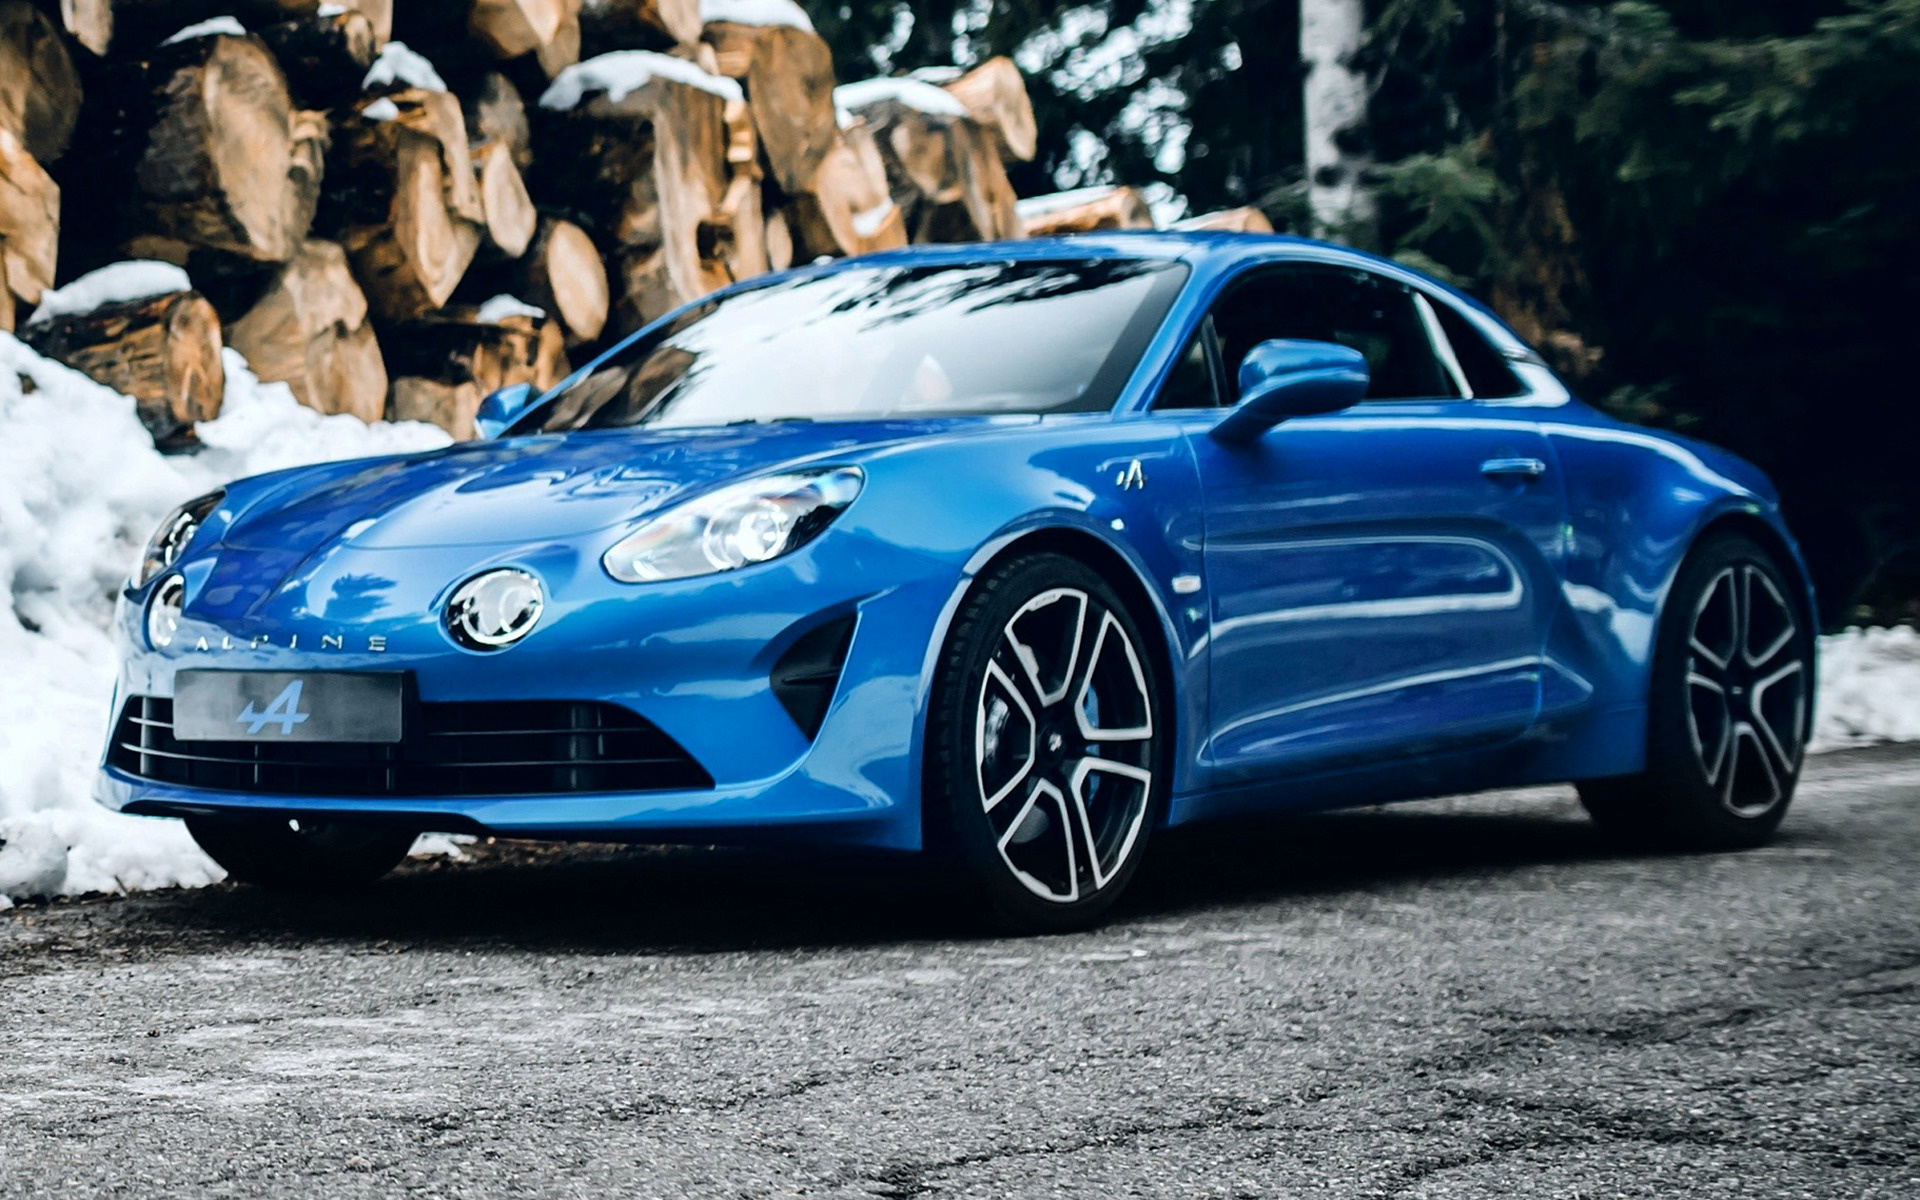 Dodge Ram 2017 >> 2017 Alpine A110 Premiere Edition - Wallpapers and HD ...